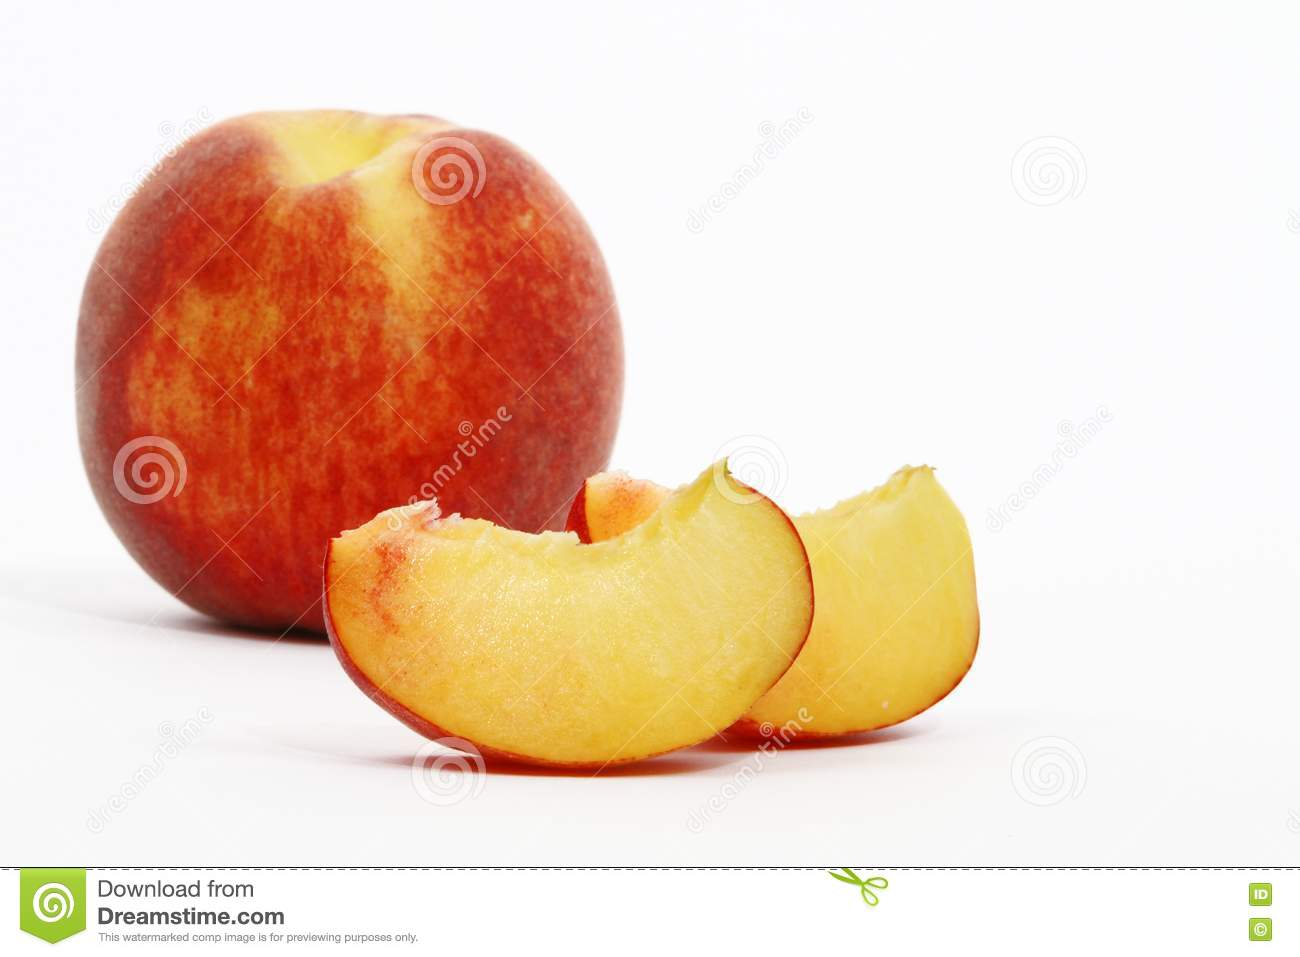 Peaches cut into wedges and whole peach